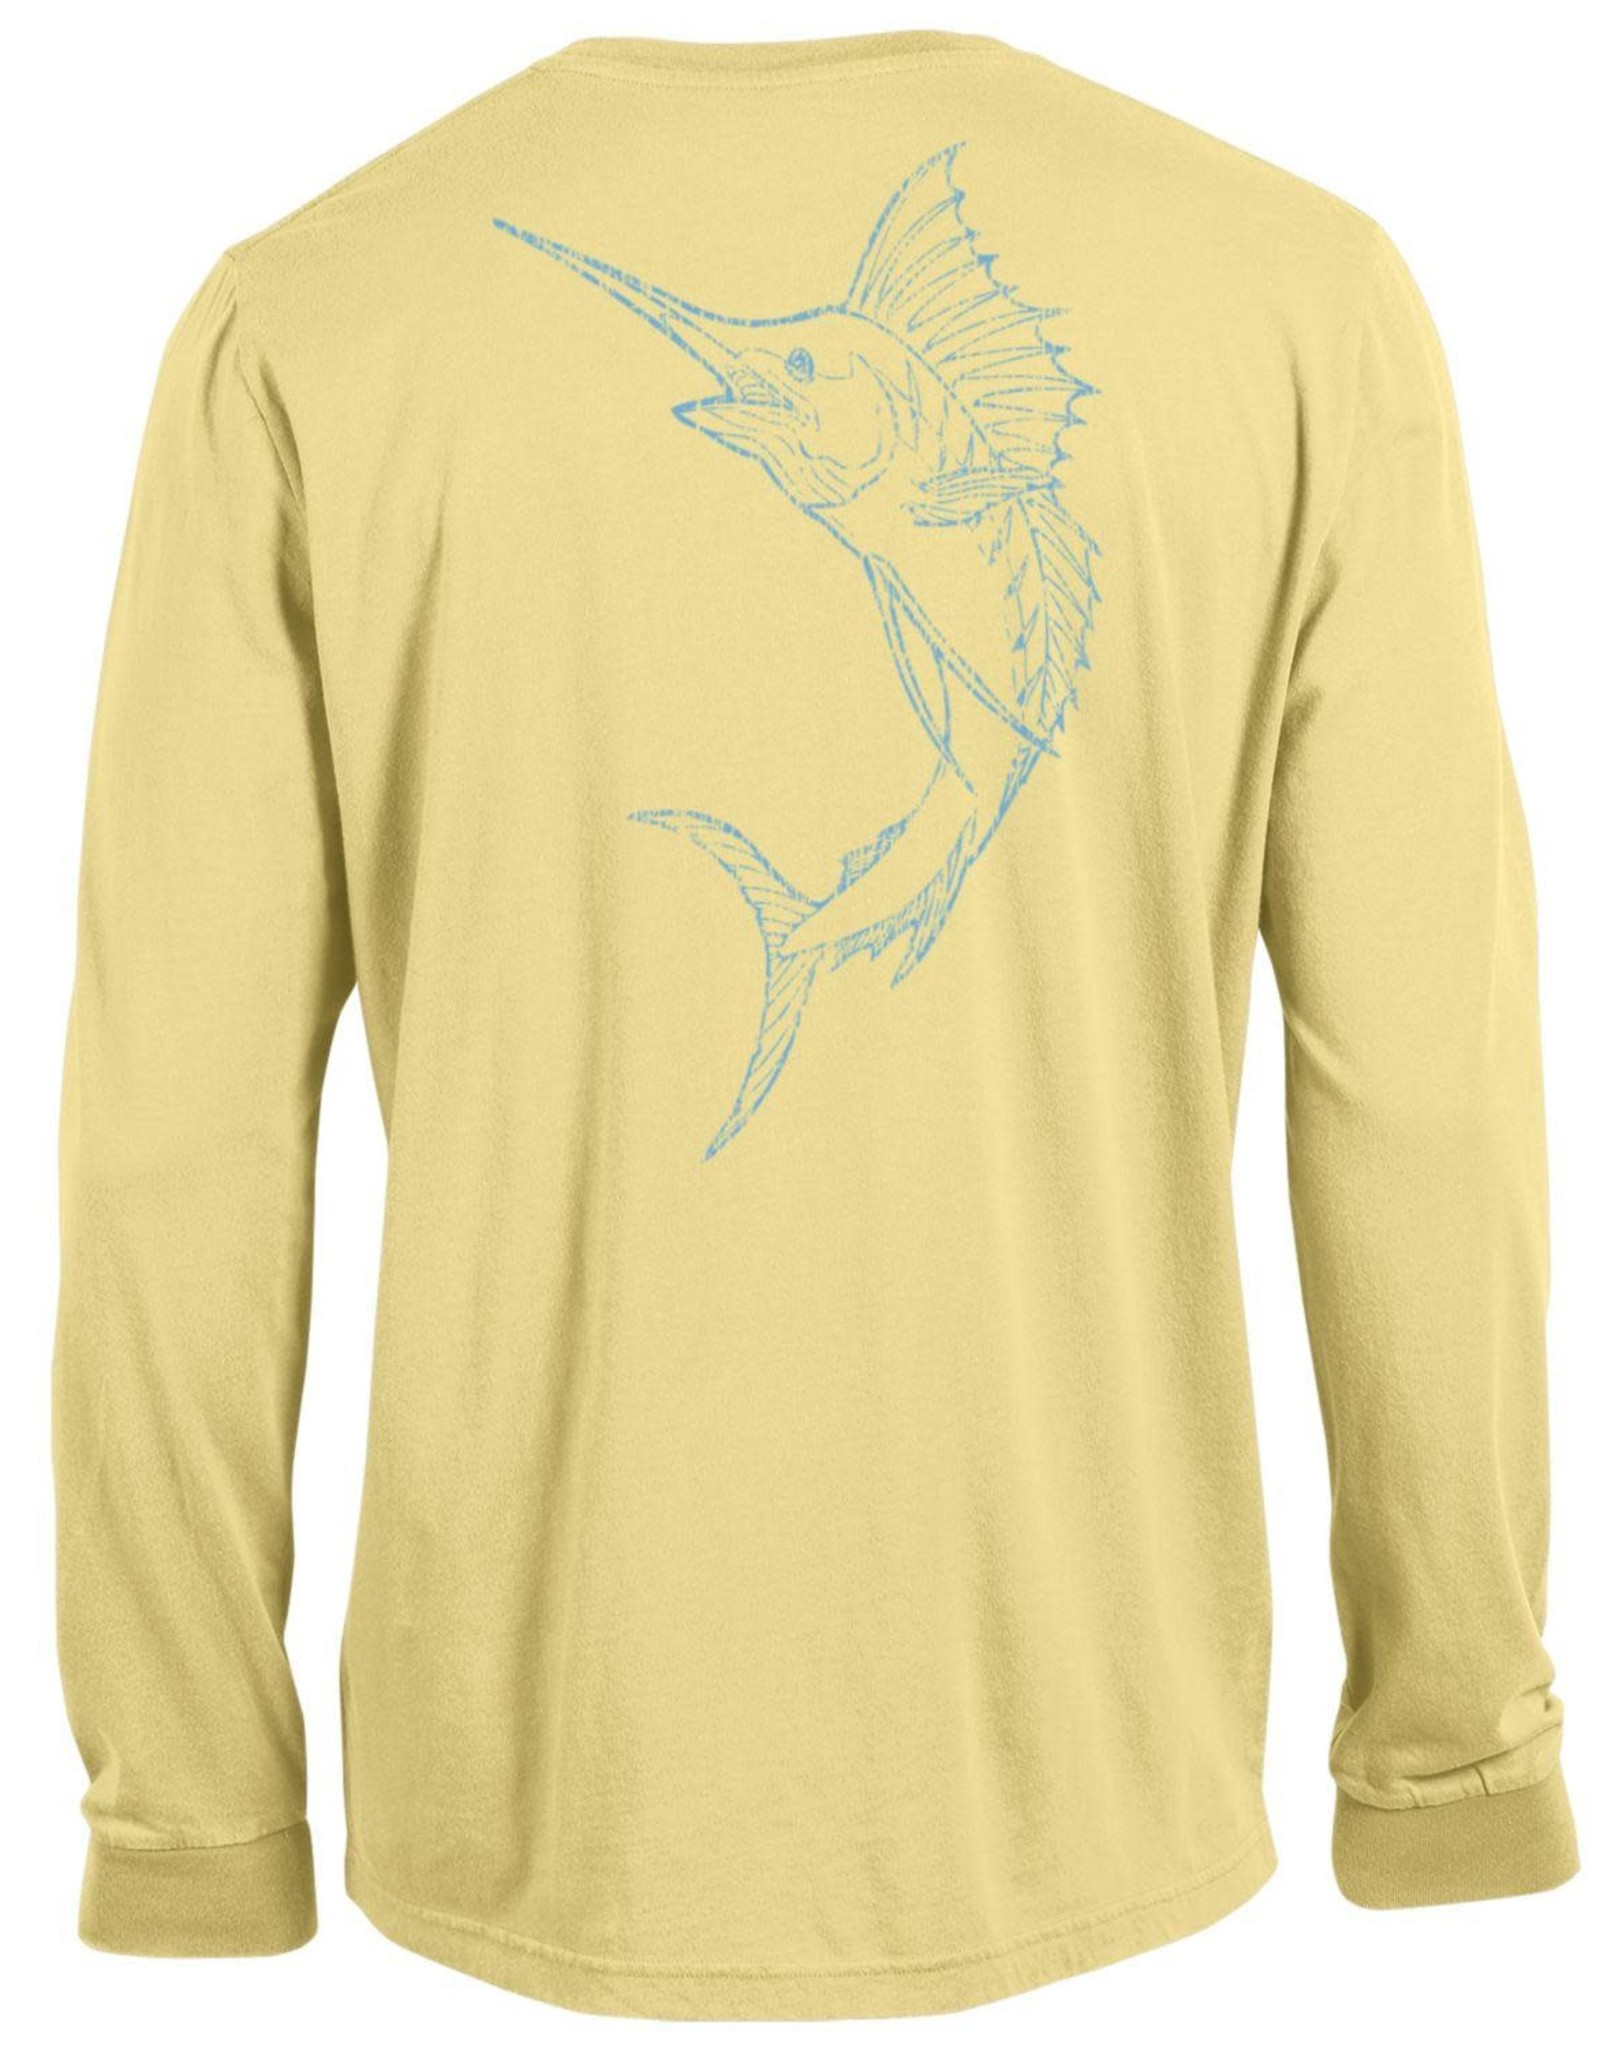 Outta Town Outta Town Unisex Long Sleeve Swordfish